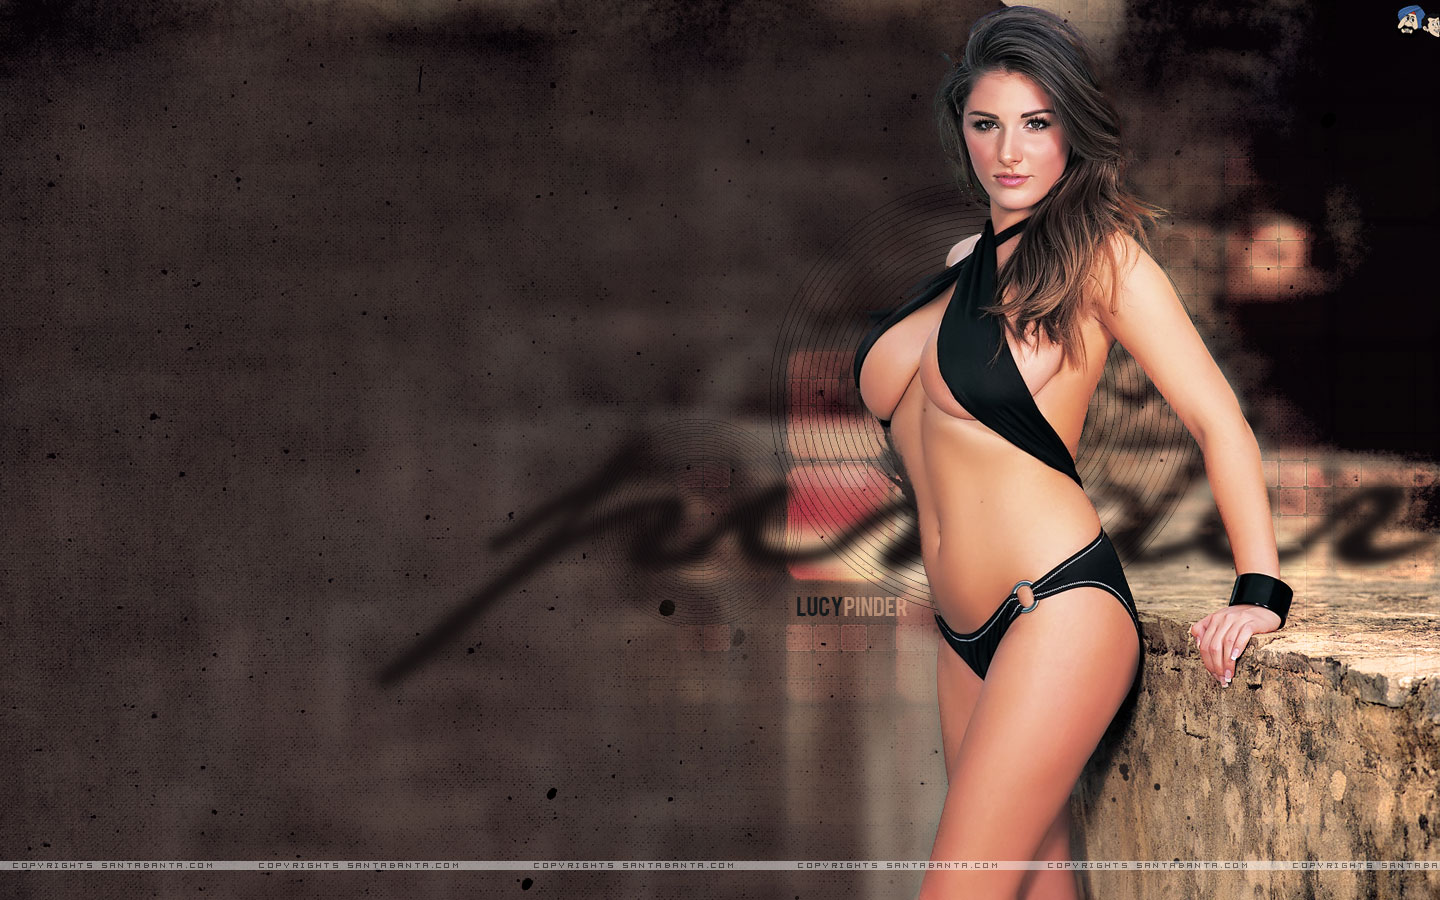 http://1.bp.blogspot.com/--t83BmmkmXc/TW0cr6CSrjI/AAAAAAAAF7Y/sK3Jmoc2Cjk/s1600/lucy-pinder-glamour-model-Modelling-career-lucy-pinder-photos-wallpapers-images-nude-sexy-big-ass-nice-boobs-lucy-pinder-biography-lucy-history-topless-01.jpg